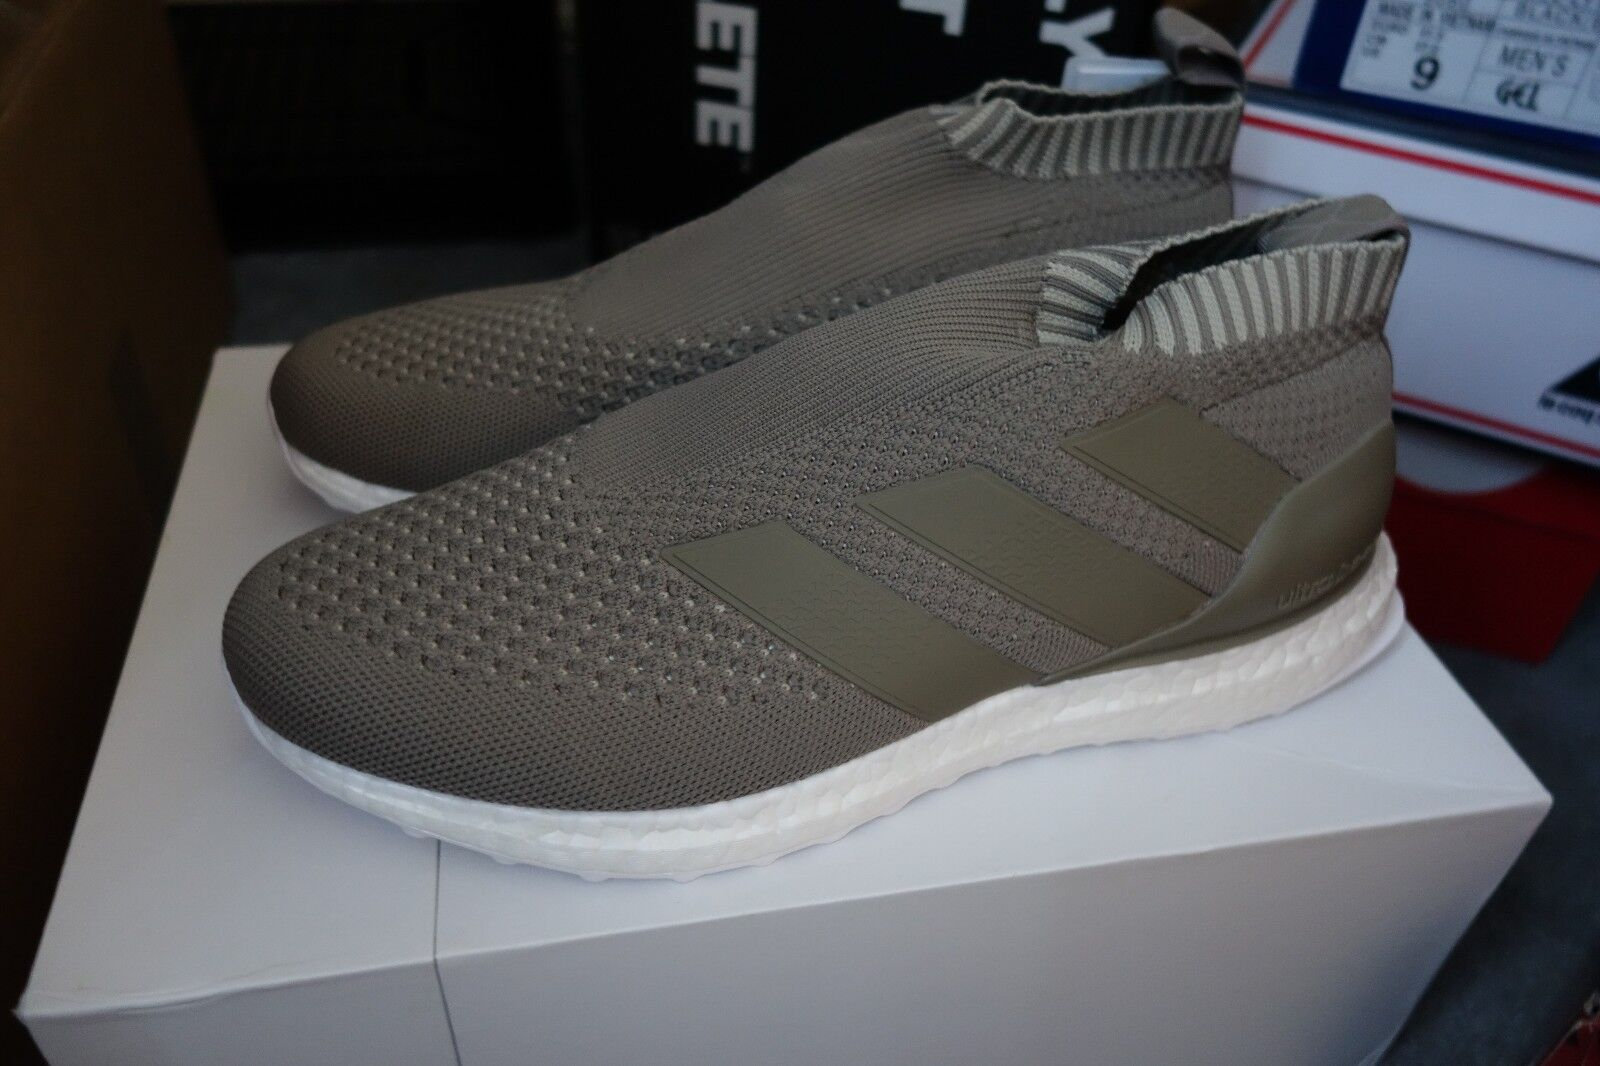 Adidas ACE 16+ PureControl Ultra Boost size 9.5 Clay CG3655